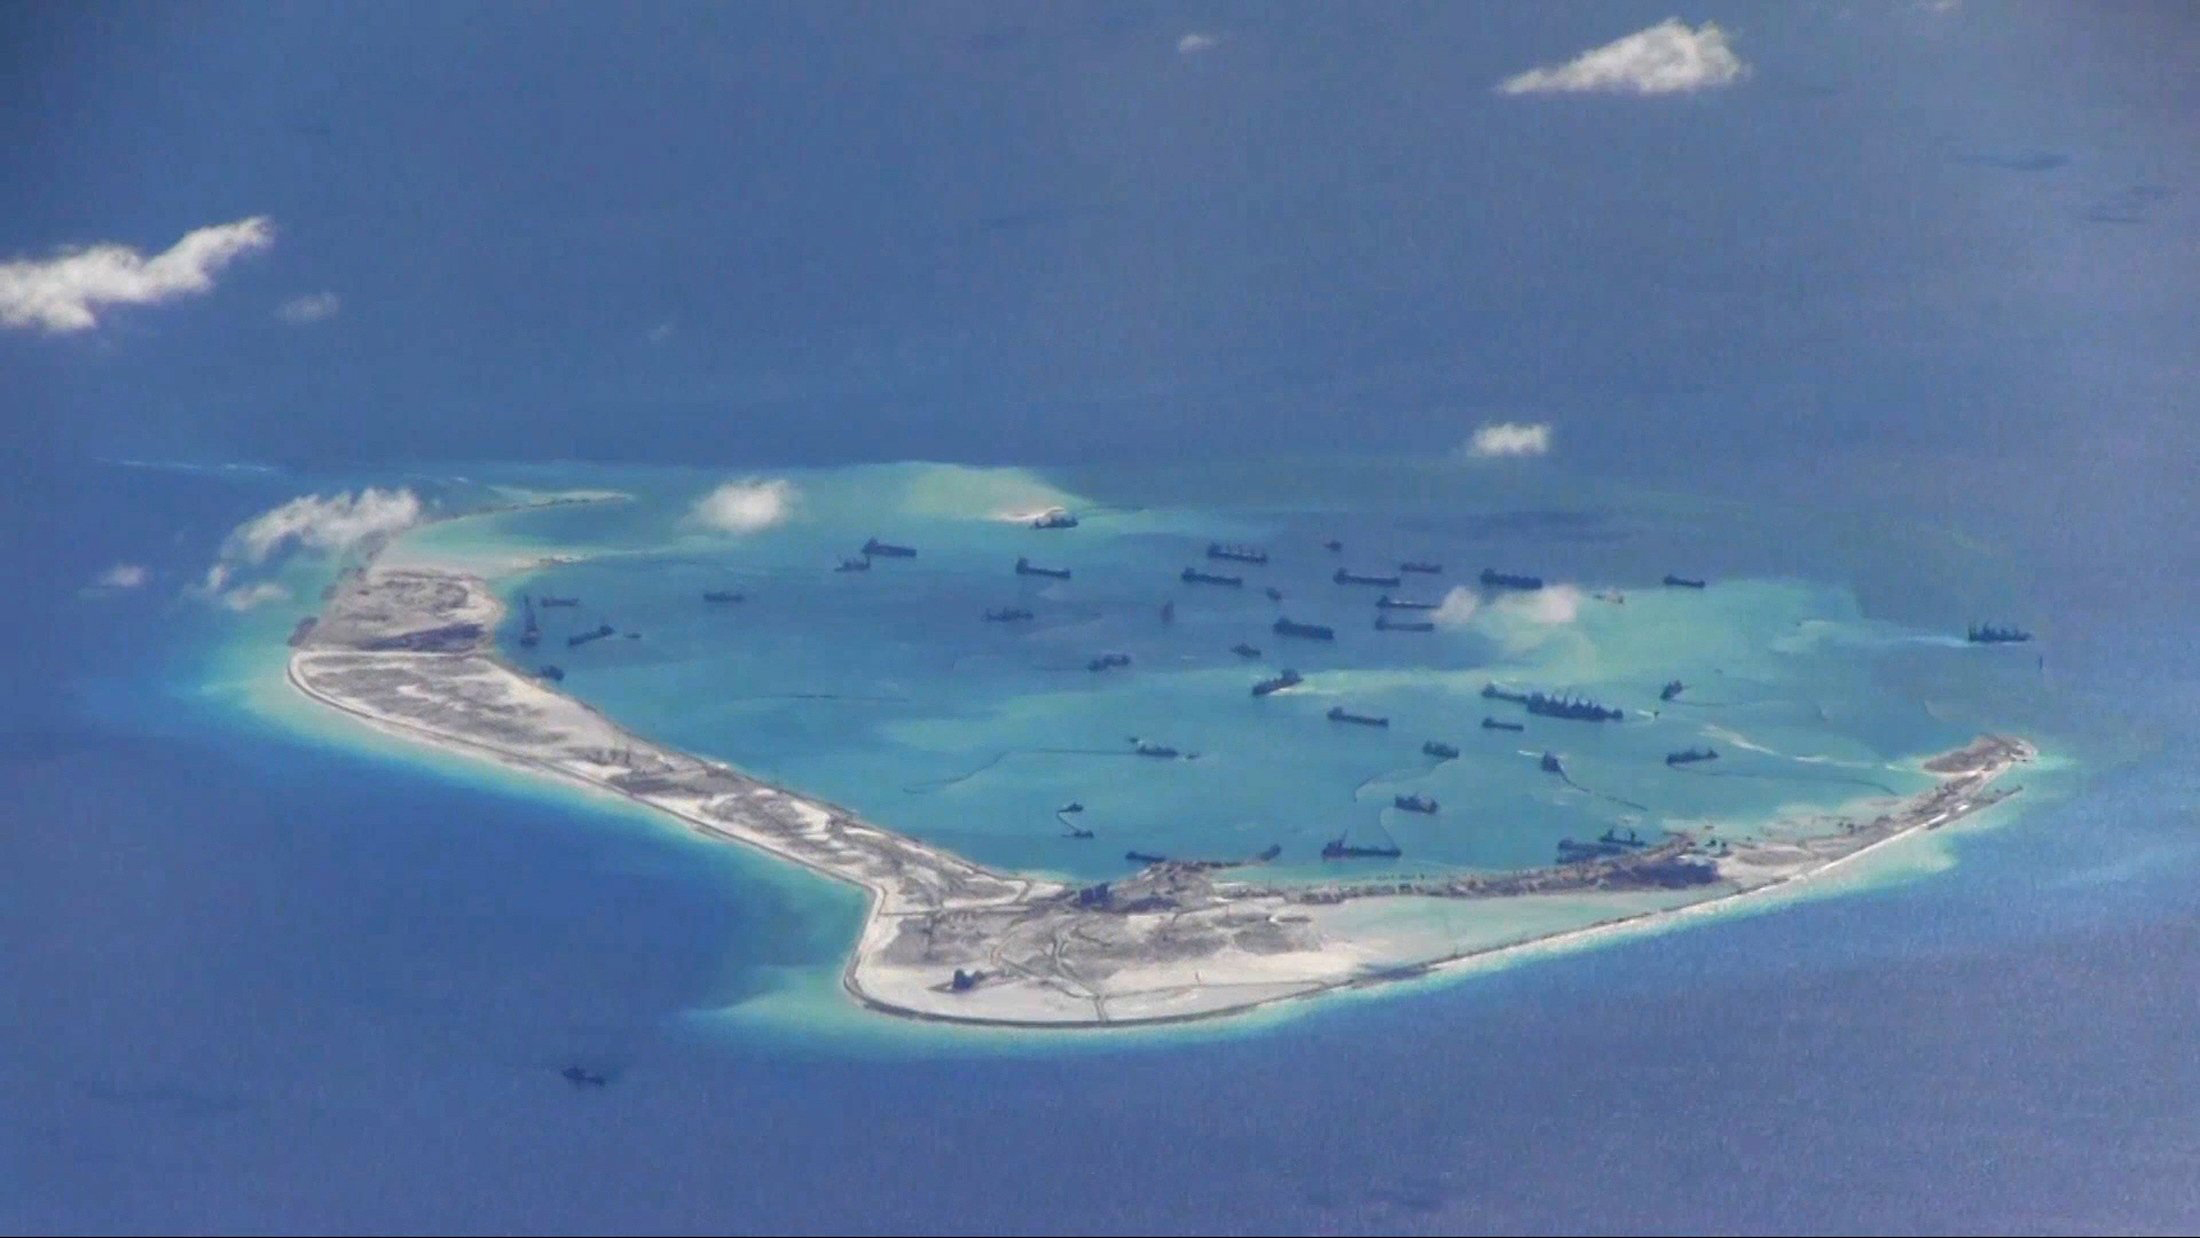 China Lands Plane on Artificial Island in Disputed South China Sea